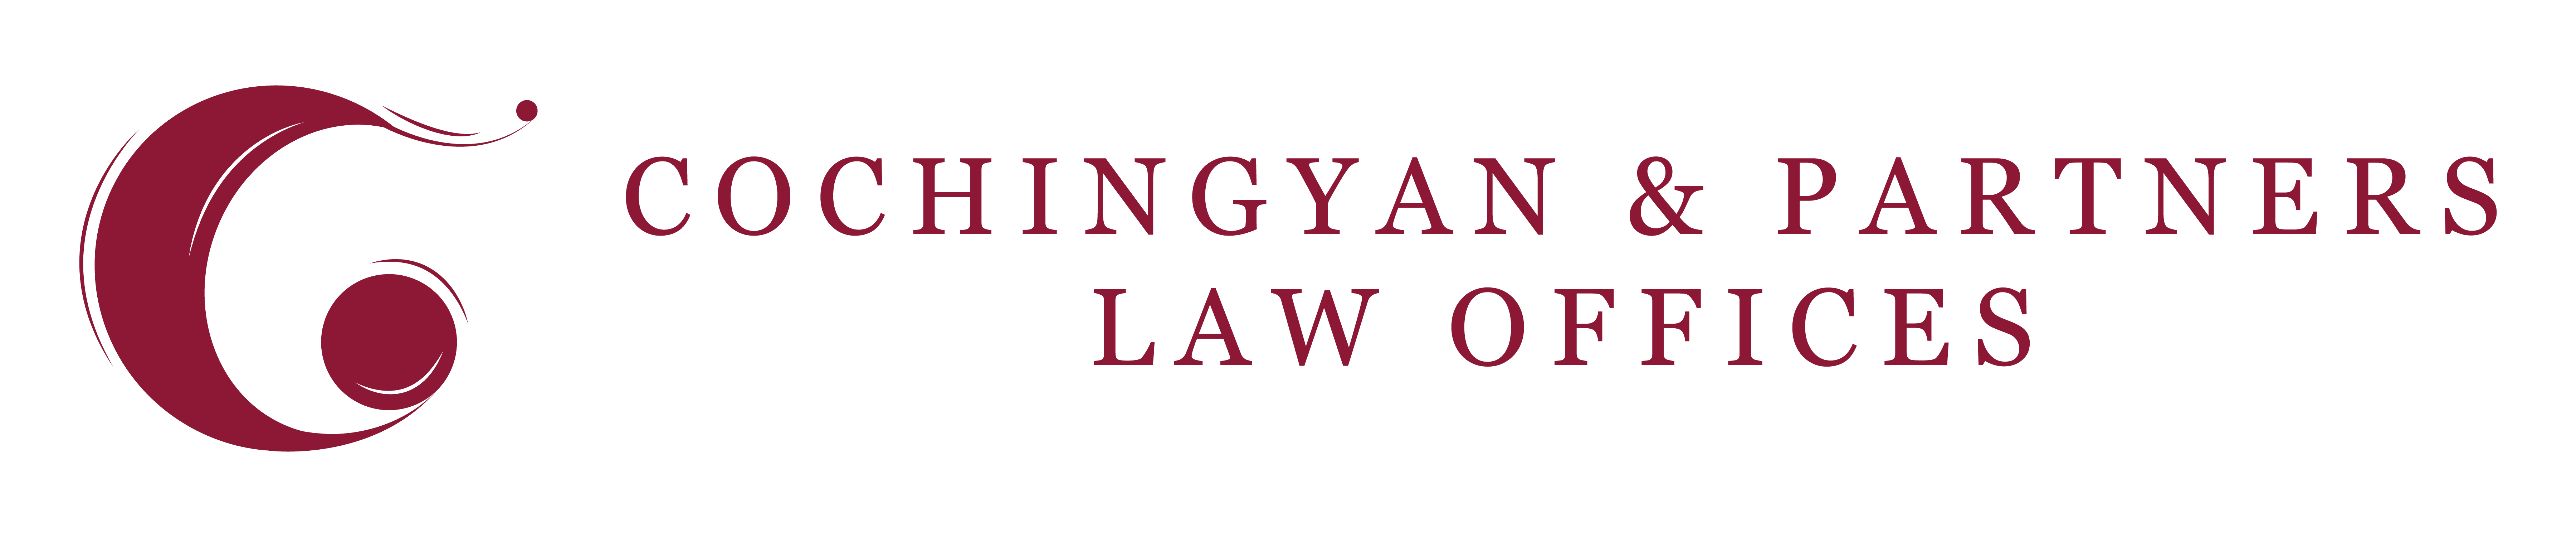 Cochingyan & Partners Law Offices, https://iblc.com/images/firmlogos/Cochingyan.png Logo